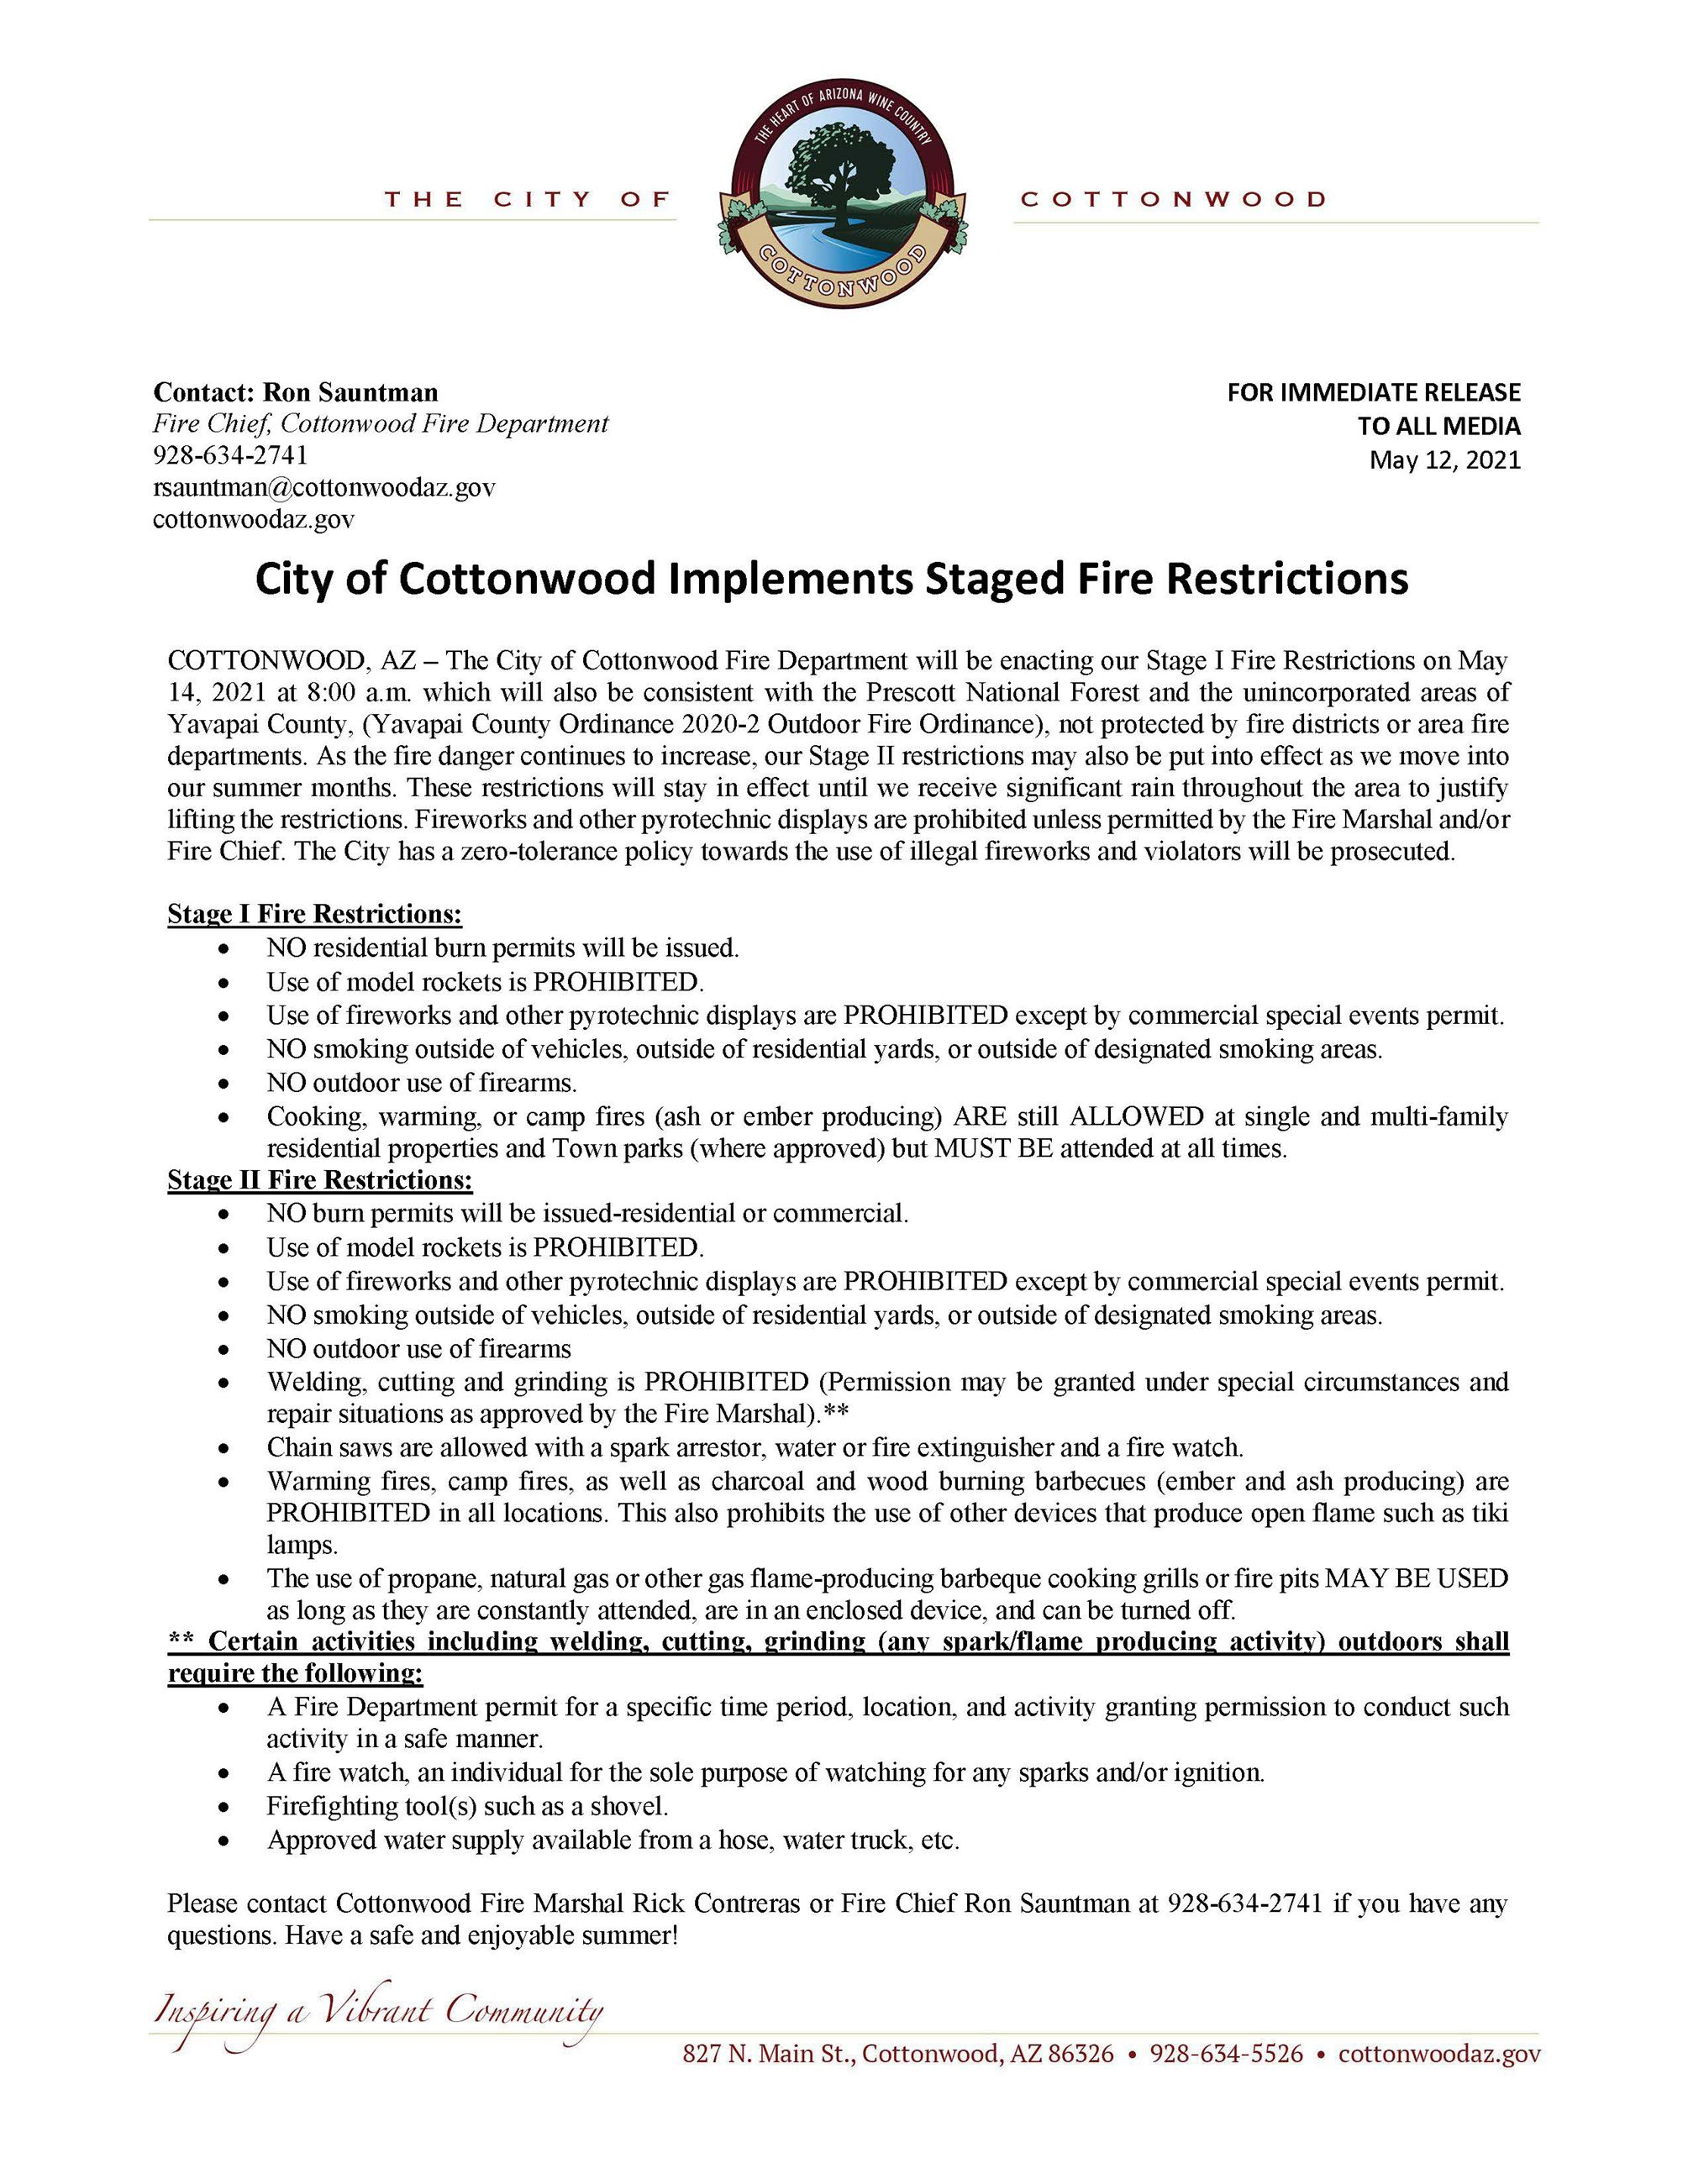 PRESS RELEASE - City of Cottonwood Implements Staged Fire Restrictions